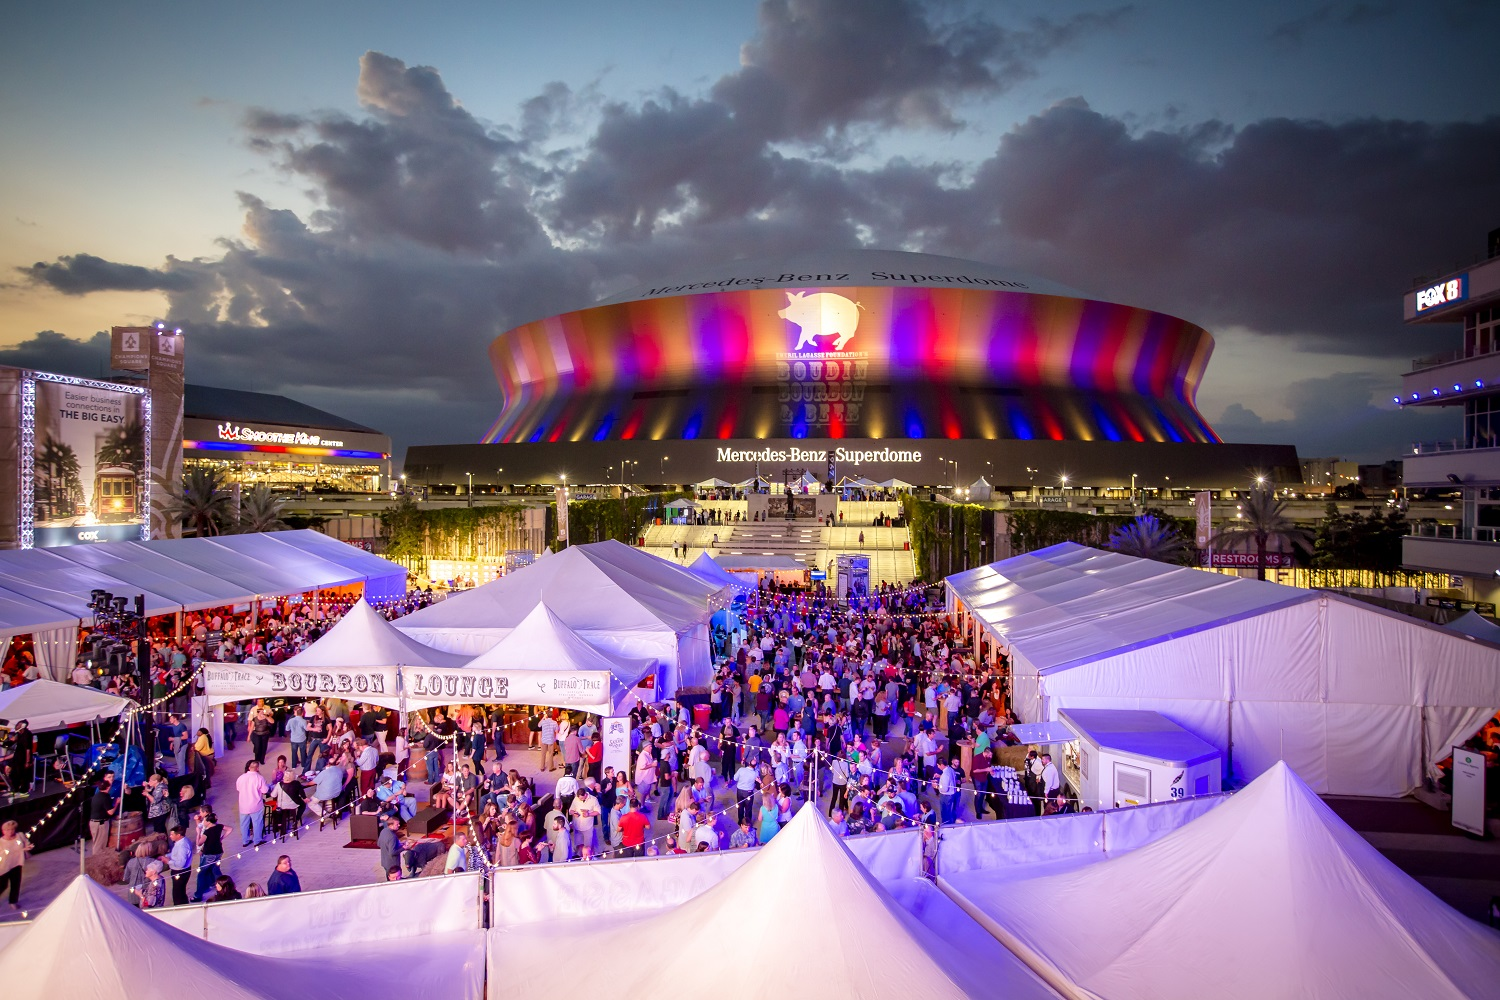 Emeril Lagasse Foundation Announces Music and Chef Lineup  for Boudin, Bourbon & Beer 2018